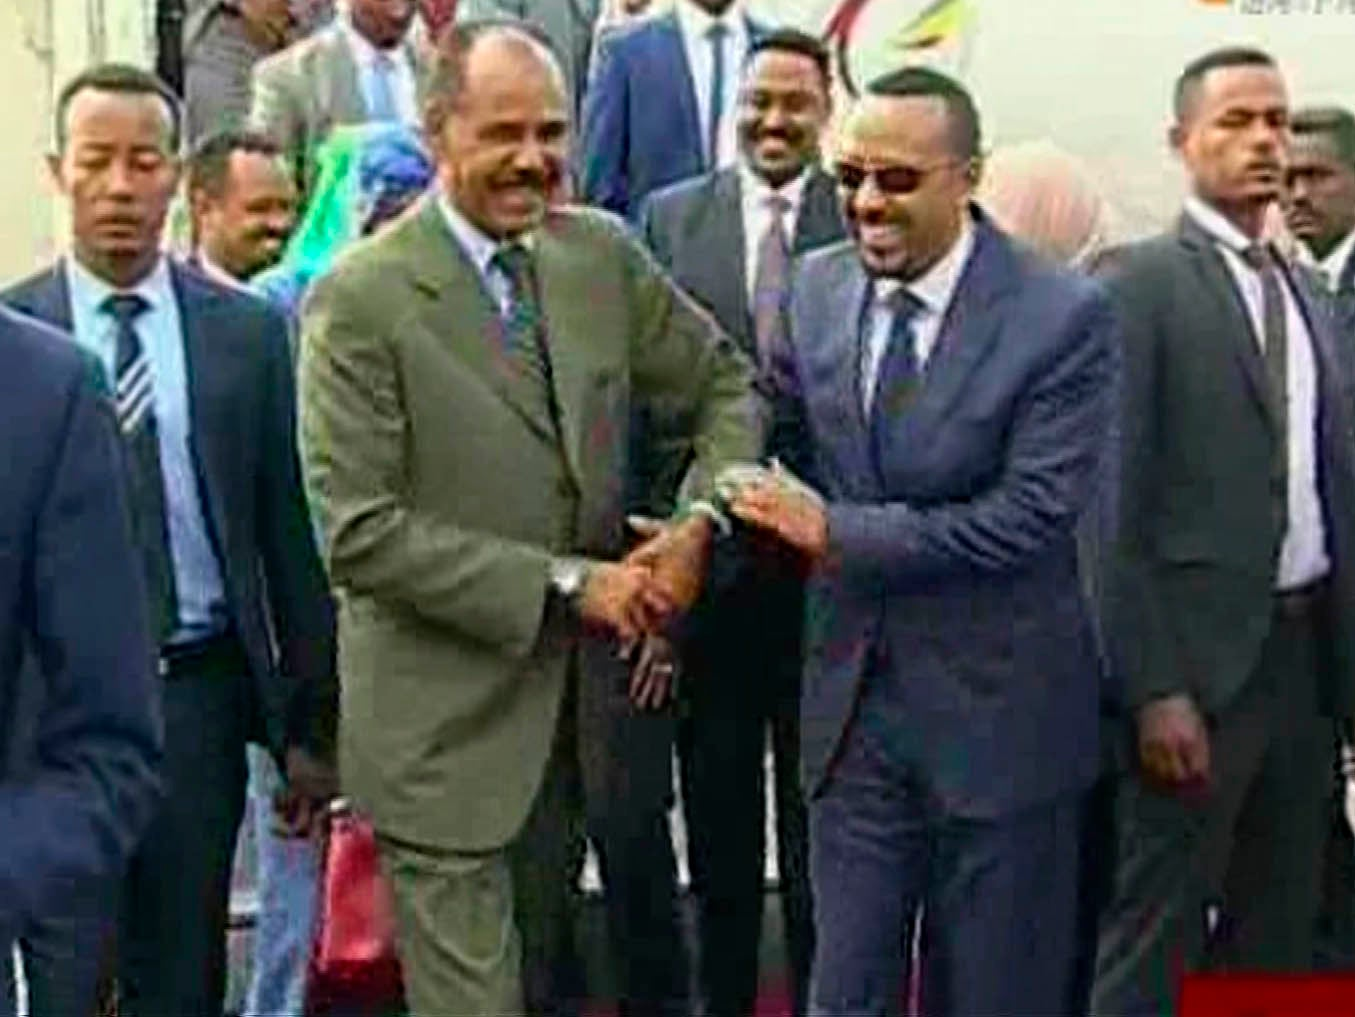 Ethiopian and Eritrean leaders share hugs and laughter in momentous first meeting for decades